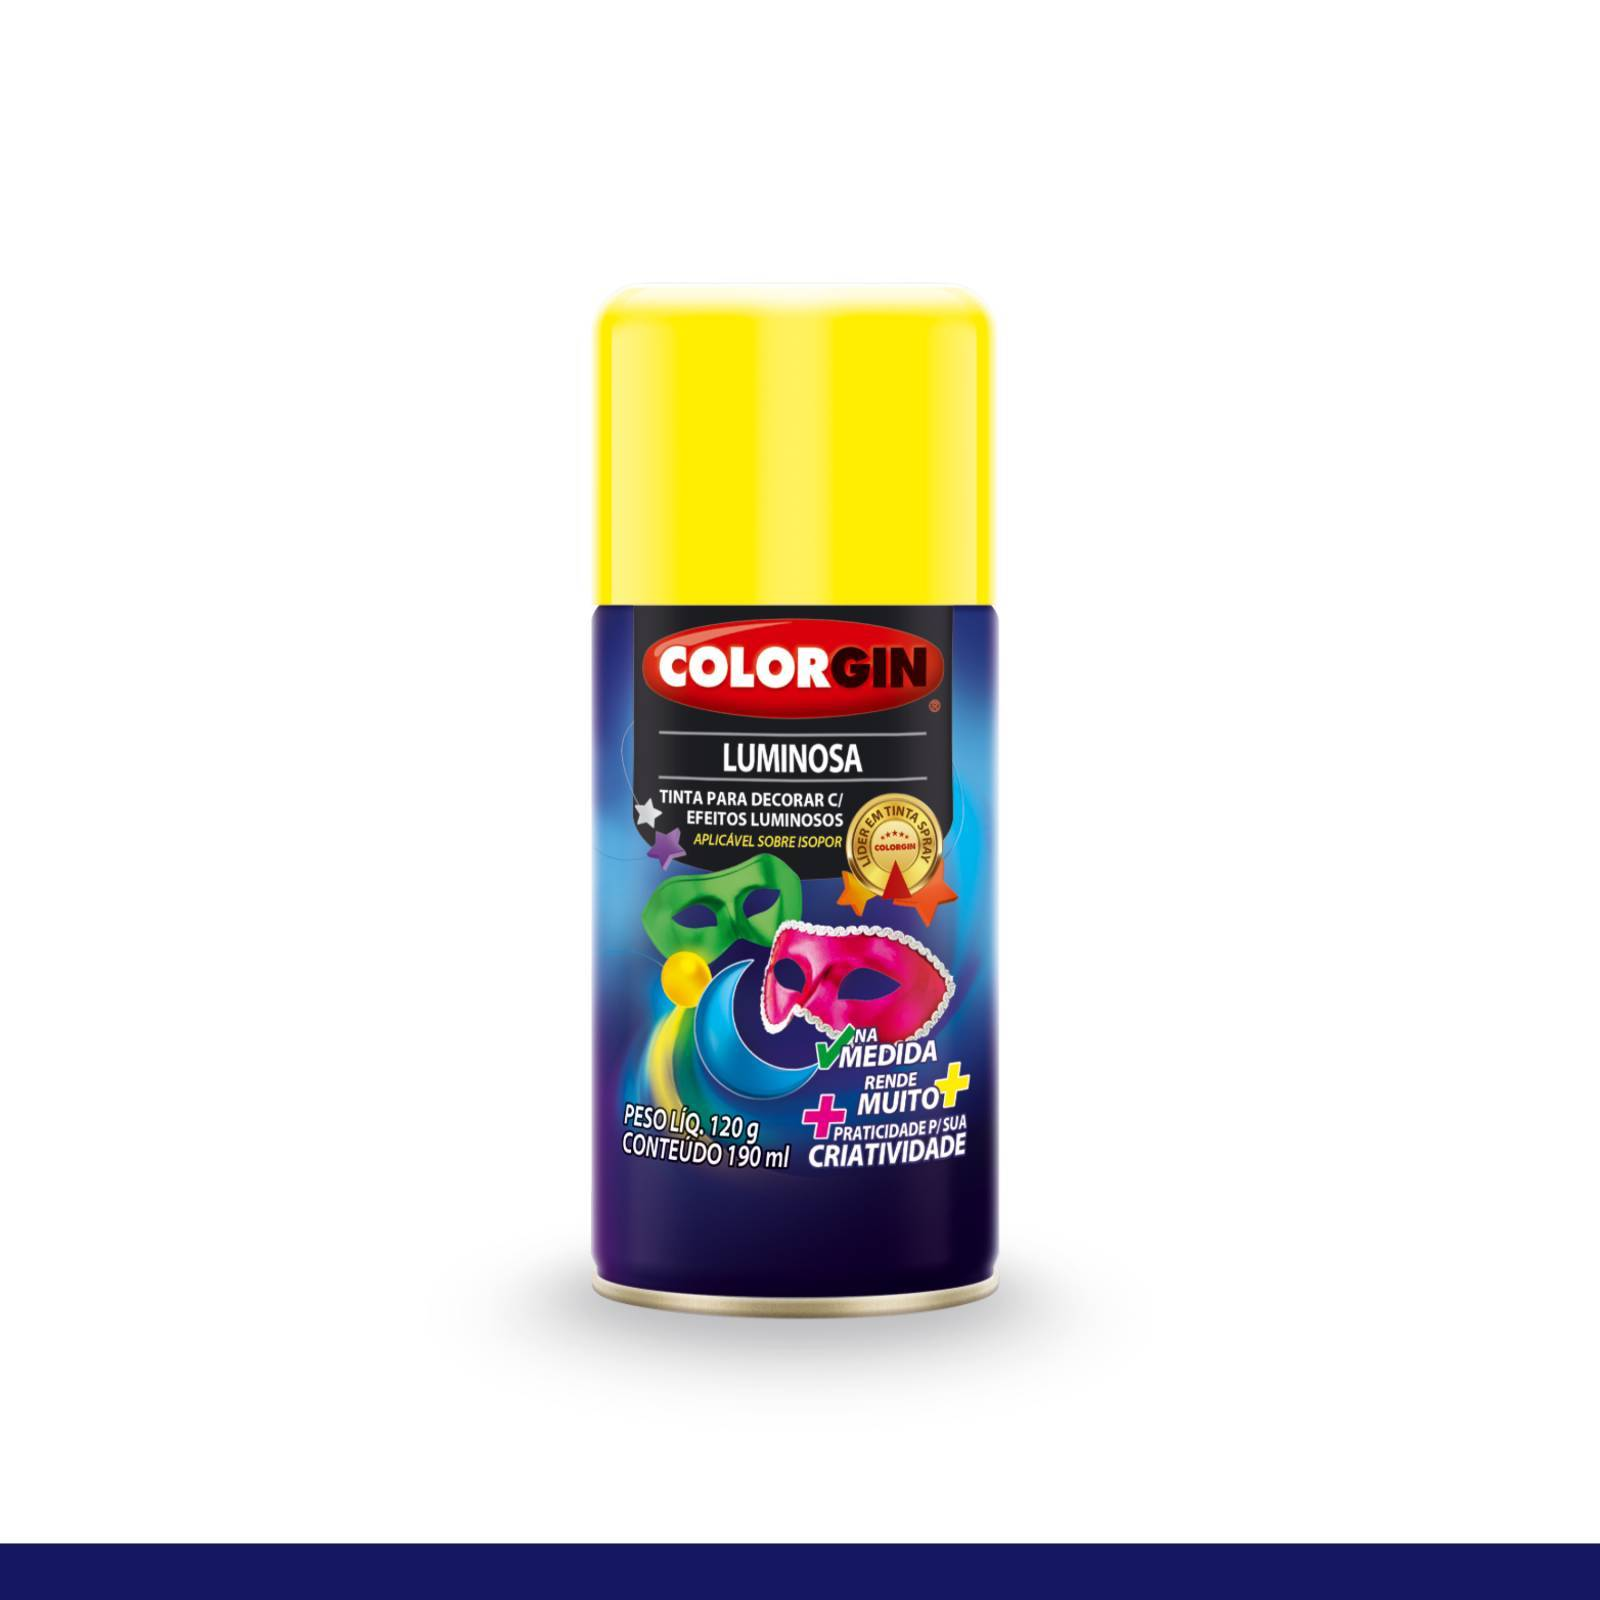 Tinta Spray Colorgin Luminosa Amarelo 576 Na Medida 190ml - Mundo Graffiti